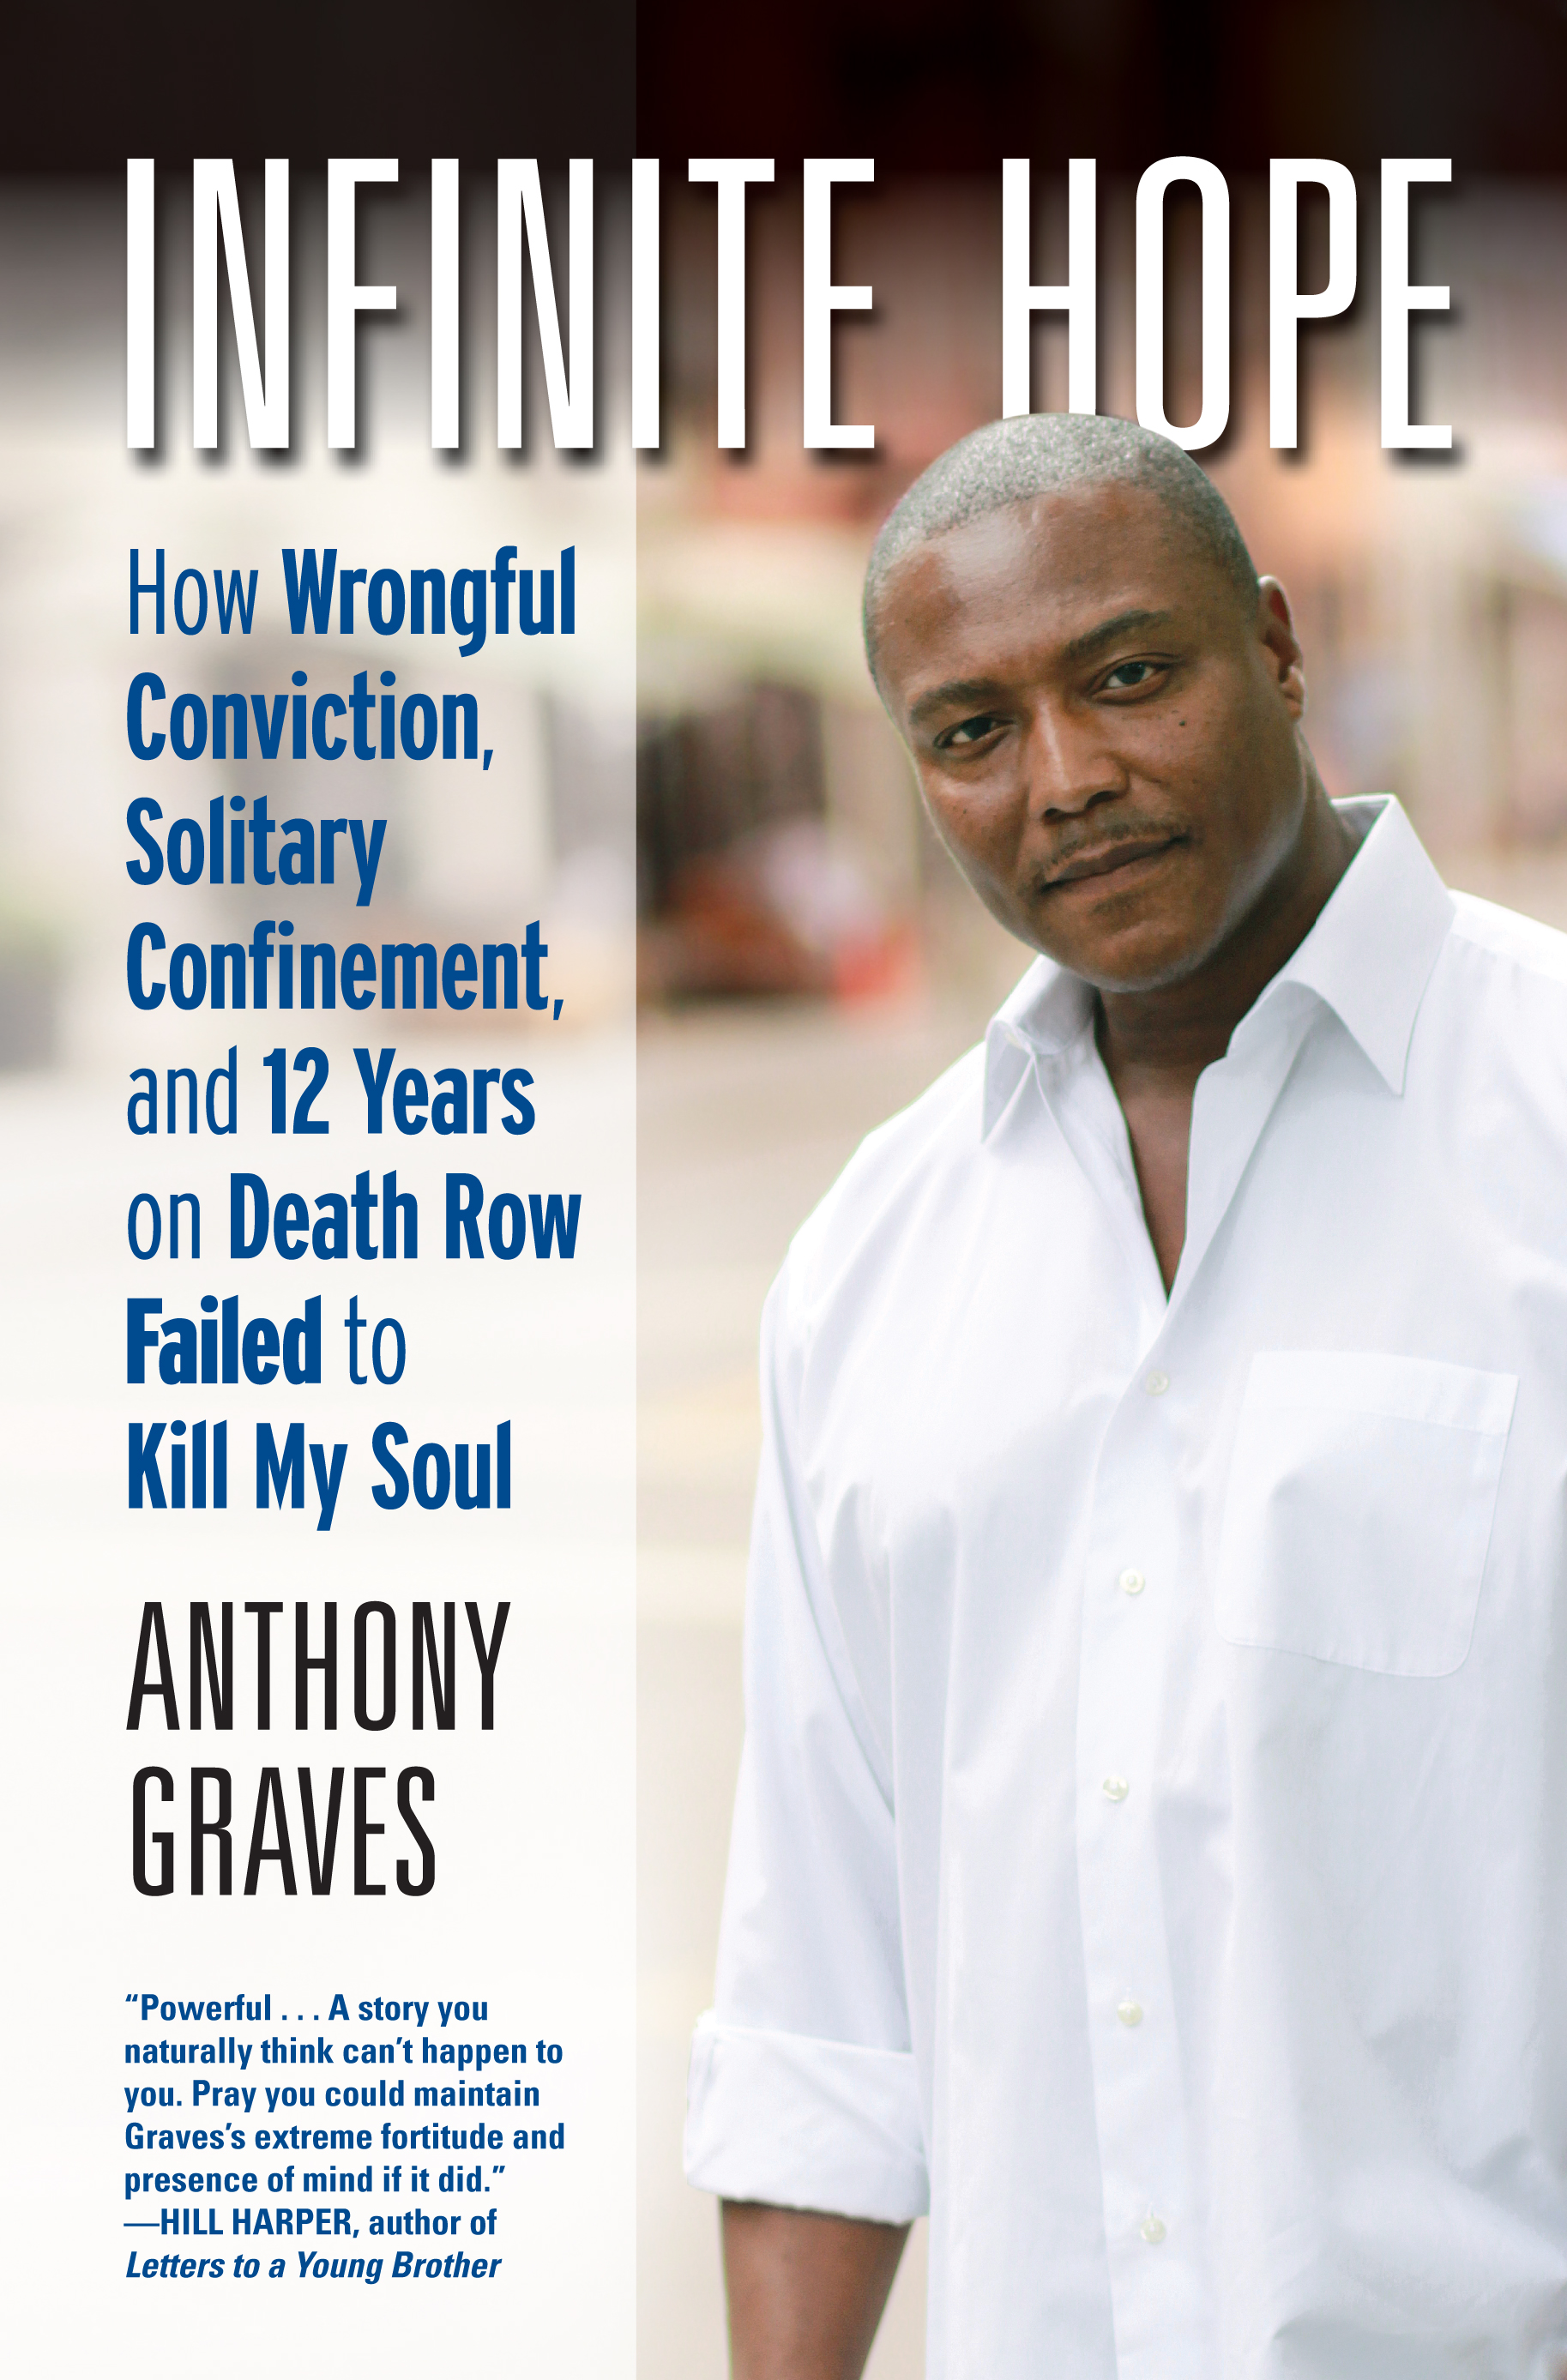 Author Anthony Graves